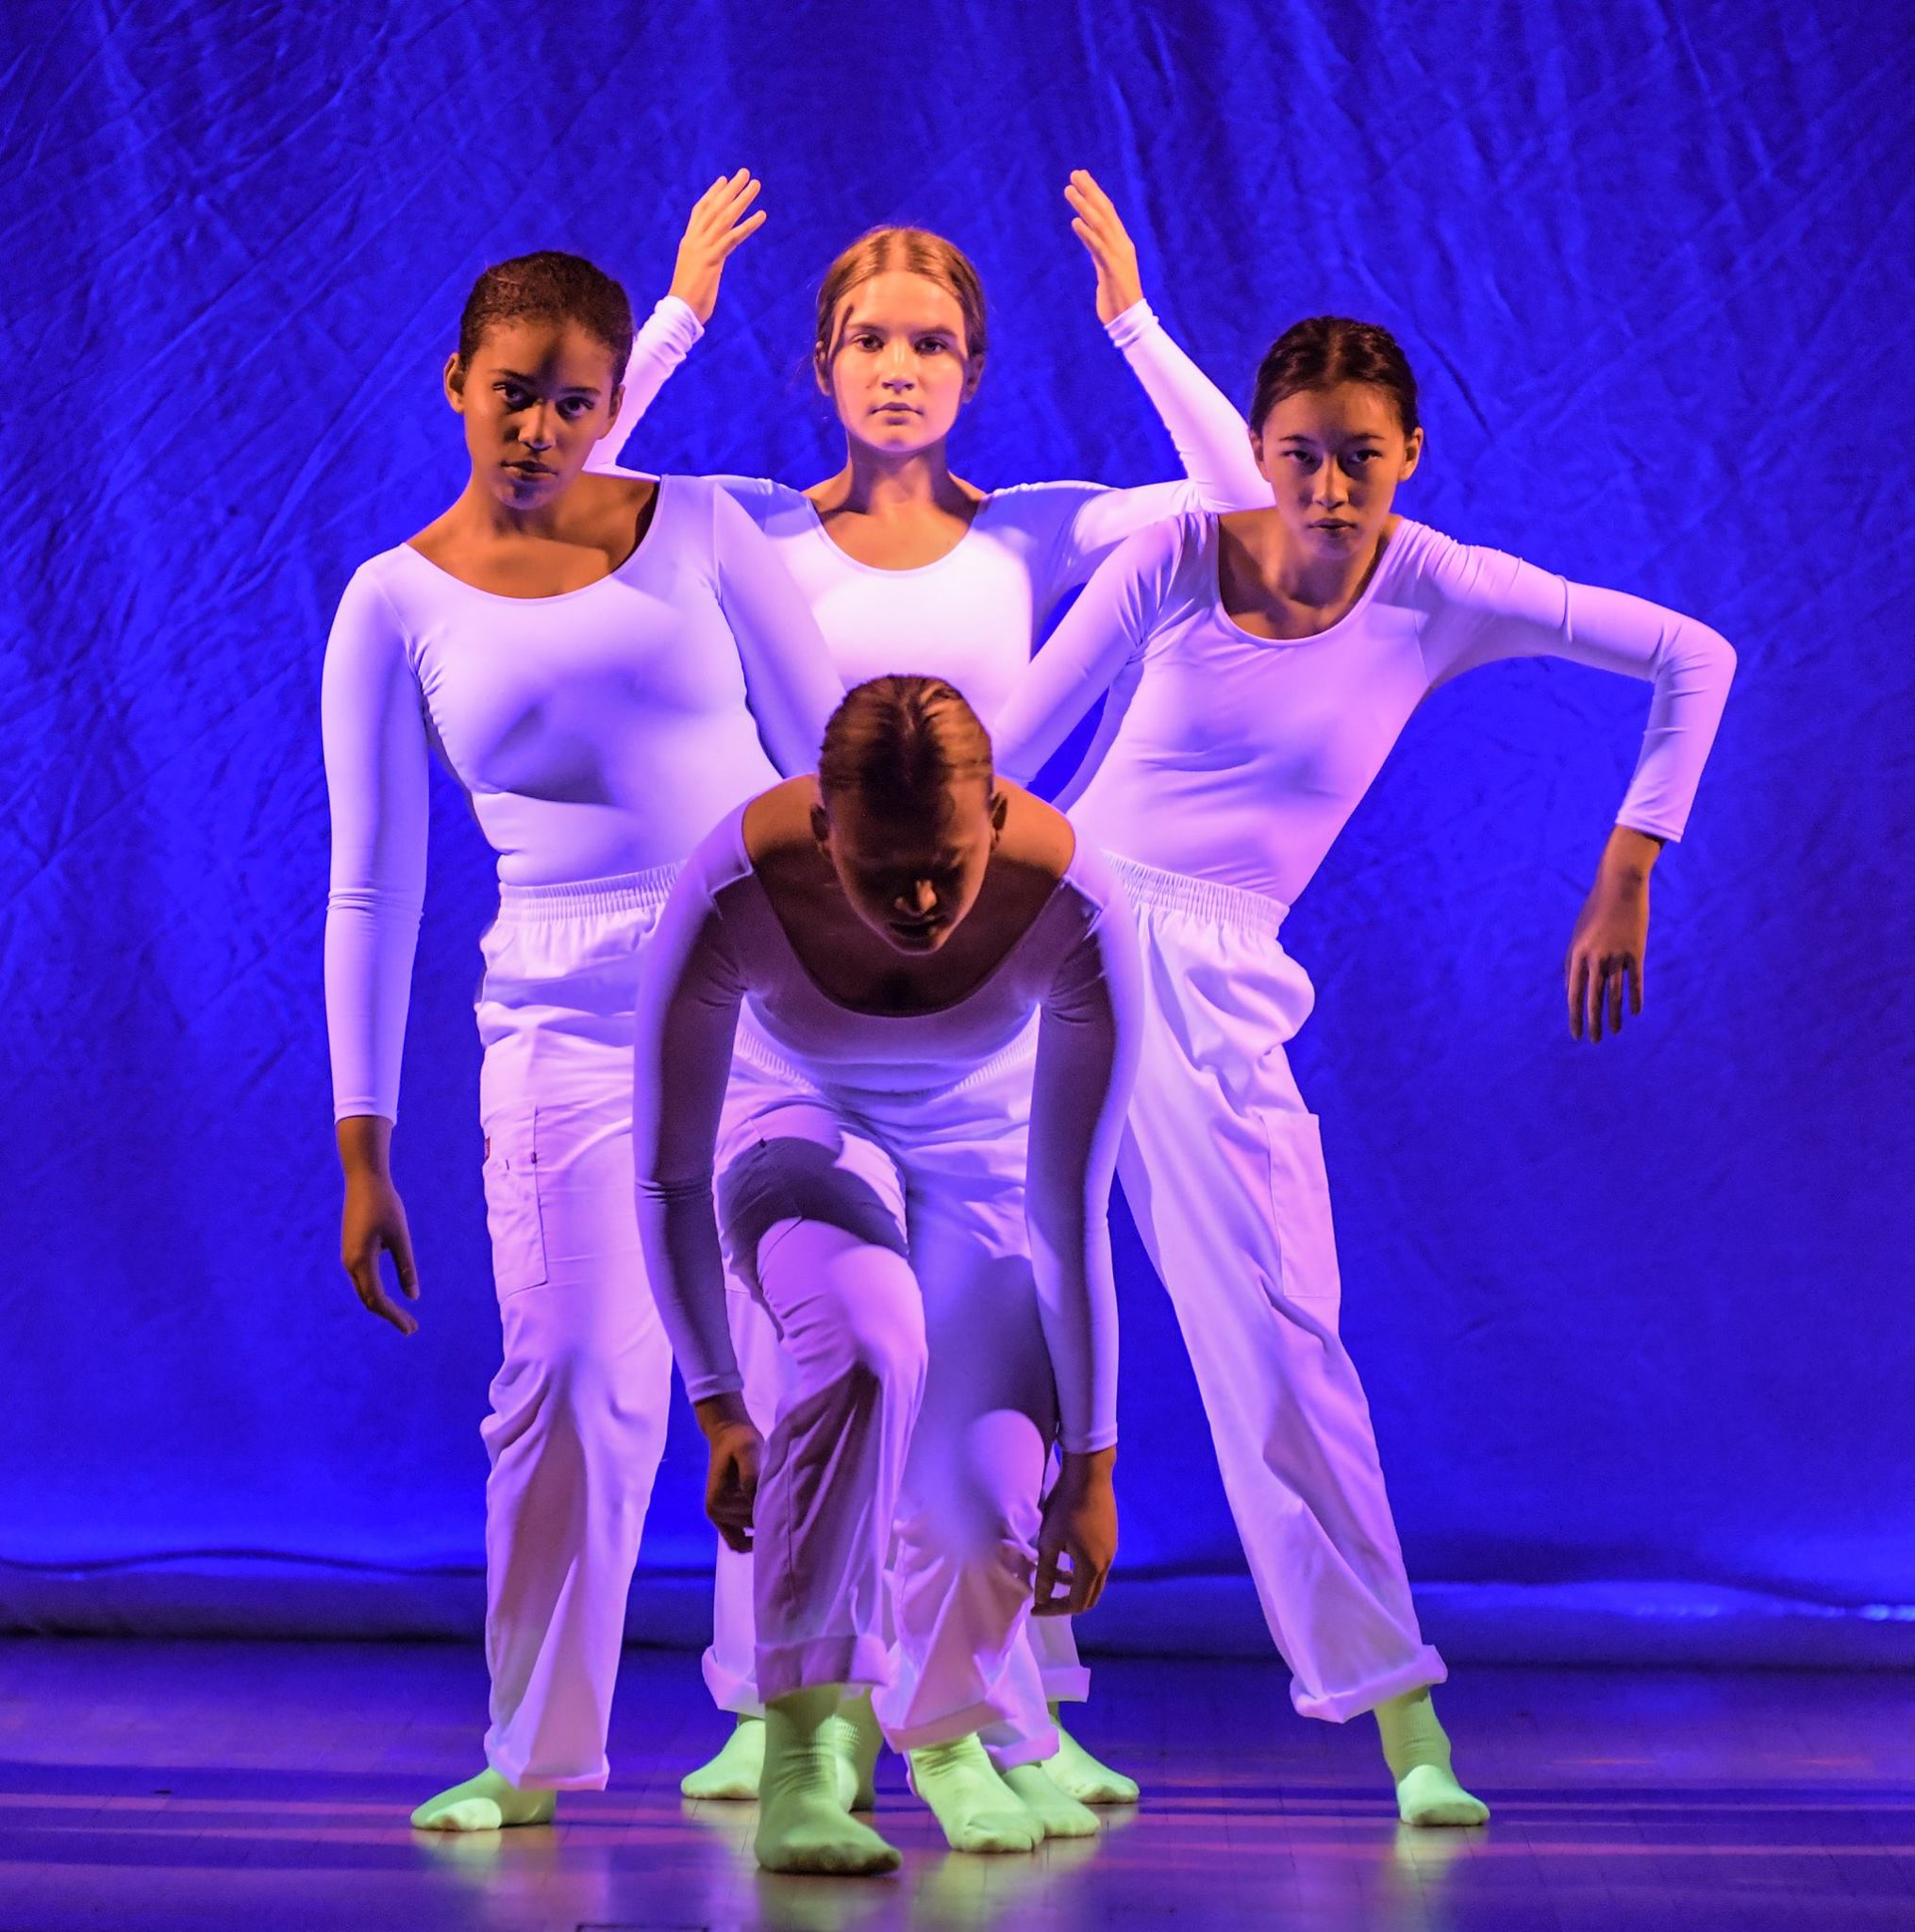 Four girls performing, all clad in white and bright green socks